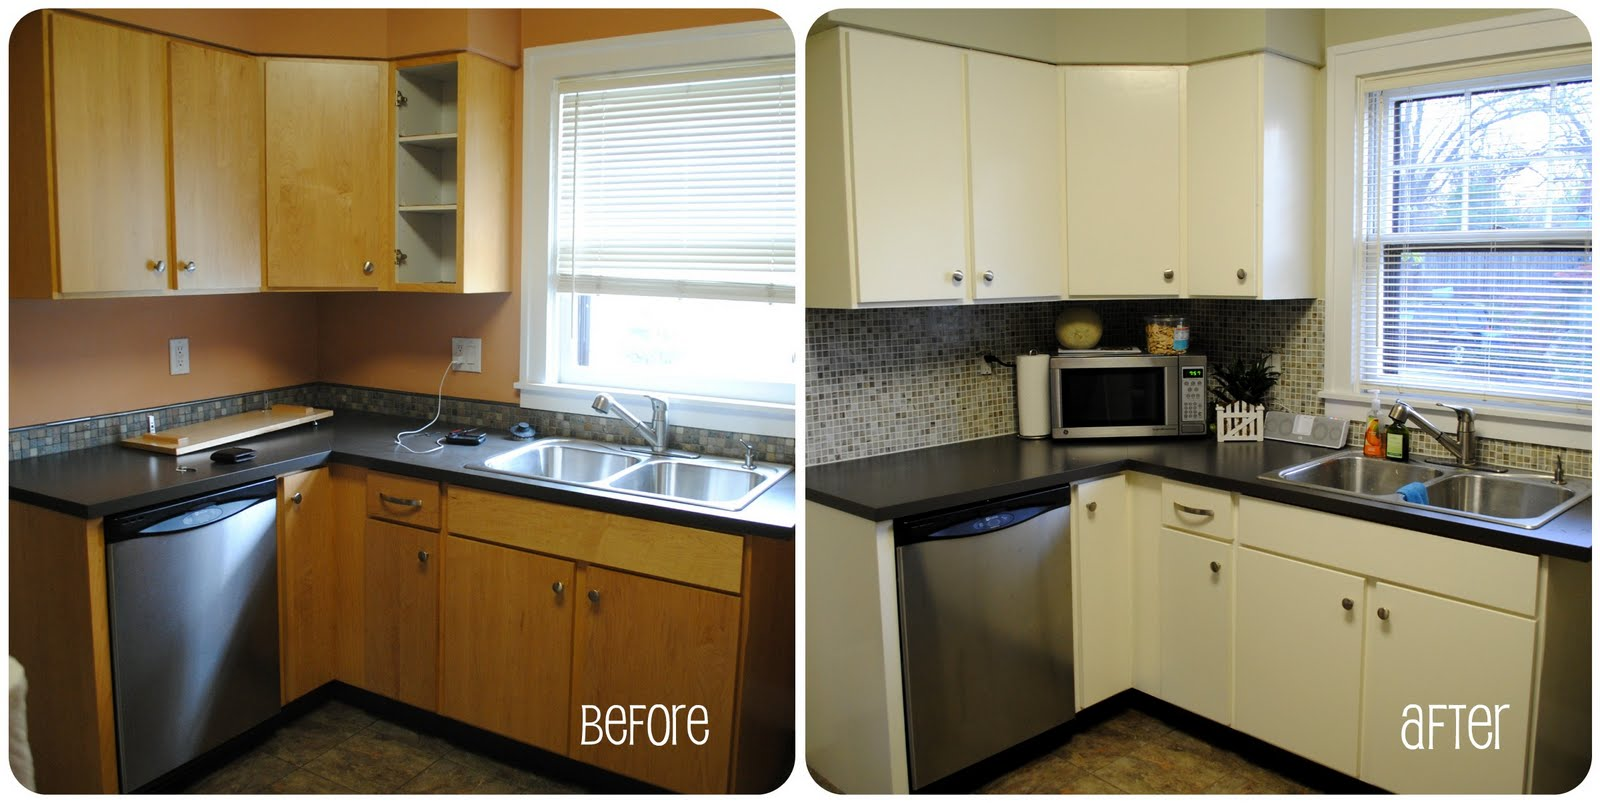 Kitchenbeforeandafter1 Jpg